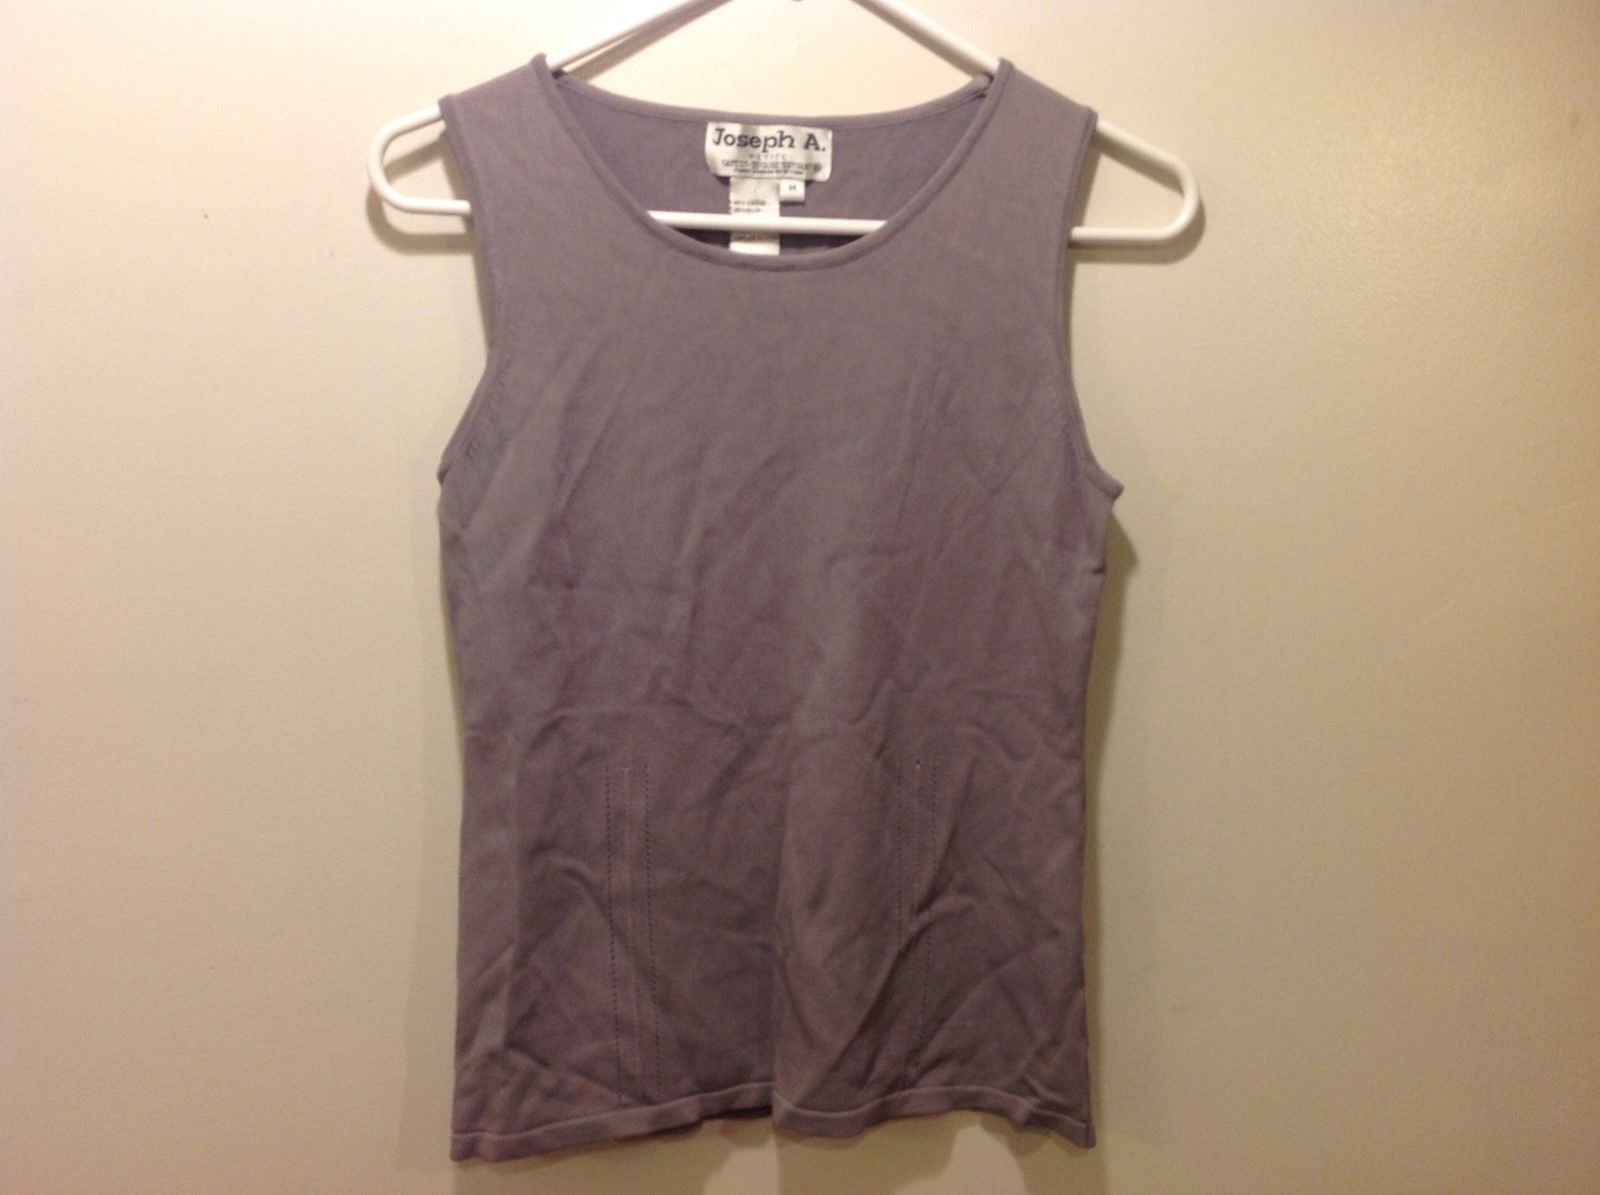 Joseph A. Grey Stretchy Pullover Tank Top Sz PM